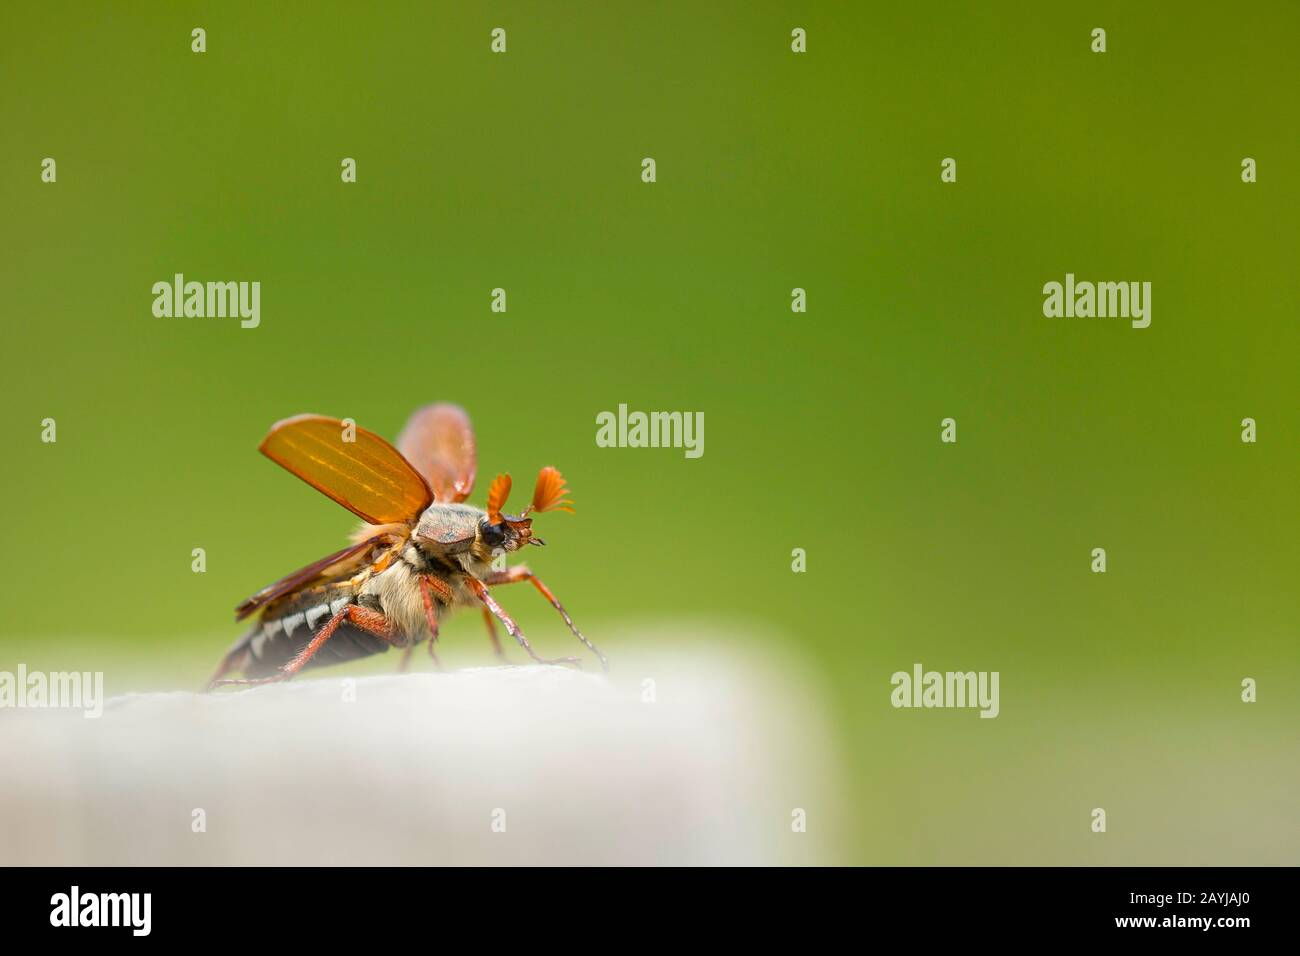 Common cockchafer, Maybug, Maybeetle (Melolontha melolontha), male taking off, France, Rosnay, La Brenne Stock Photo